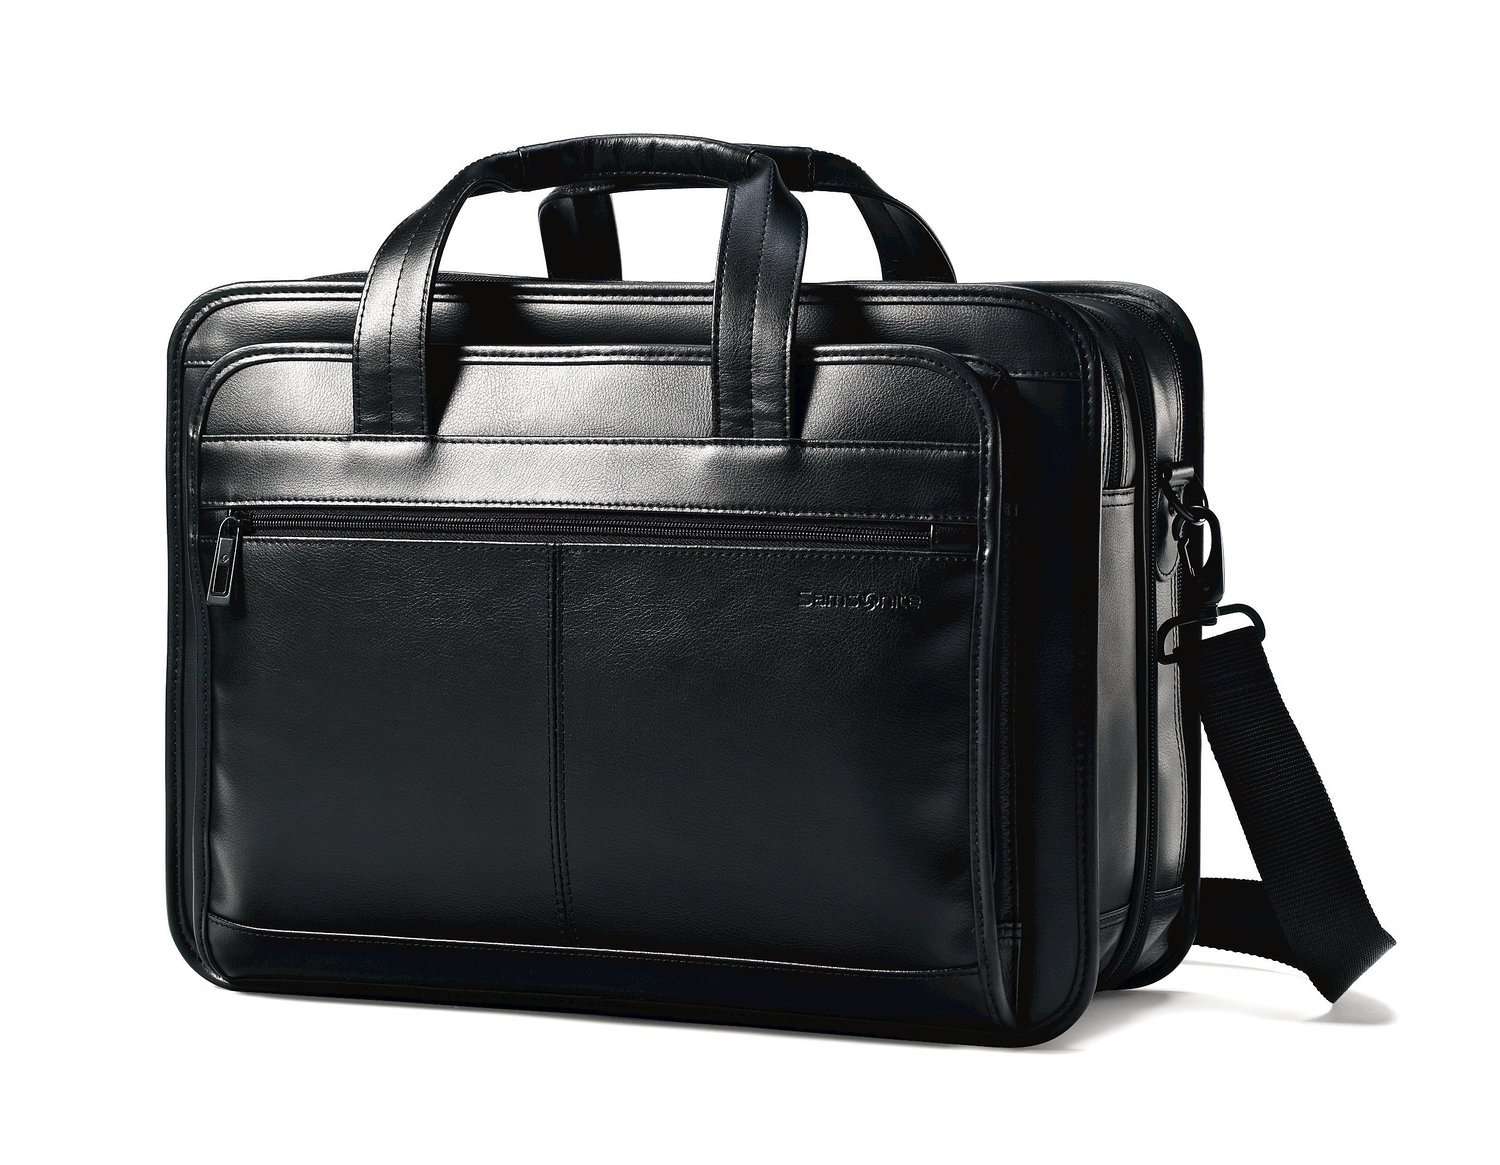 Samsonite Leather Business Cases Expandable Laptop Briefcase in Black